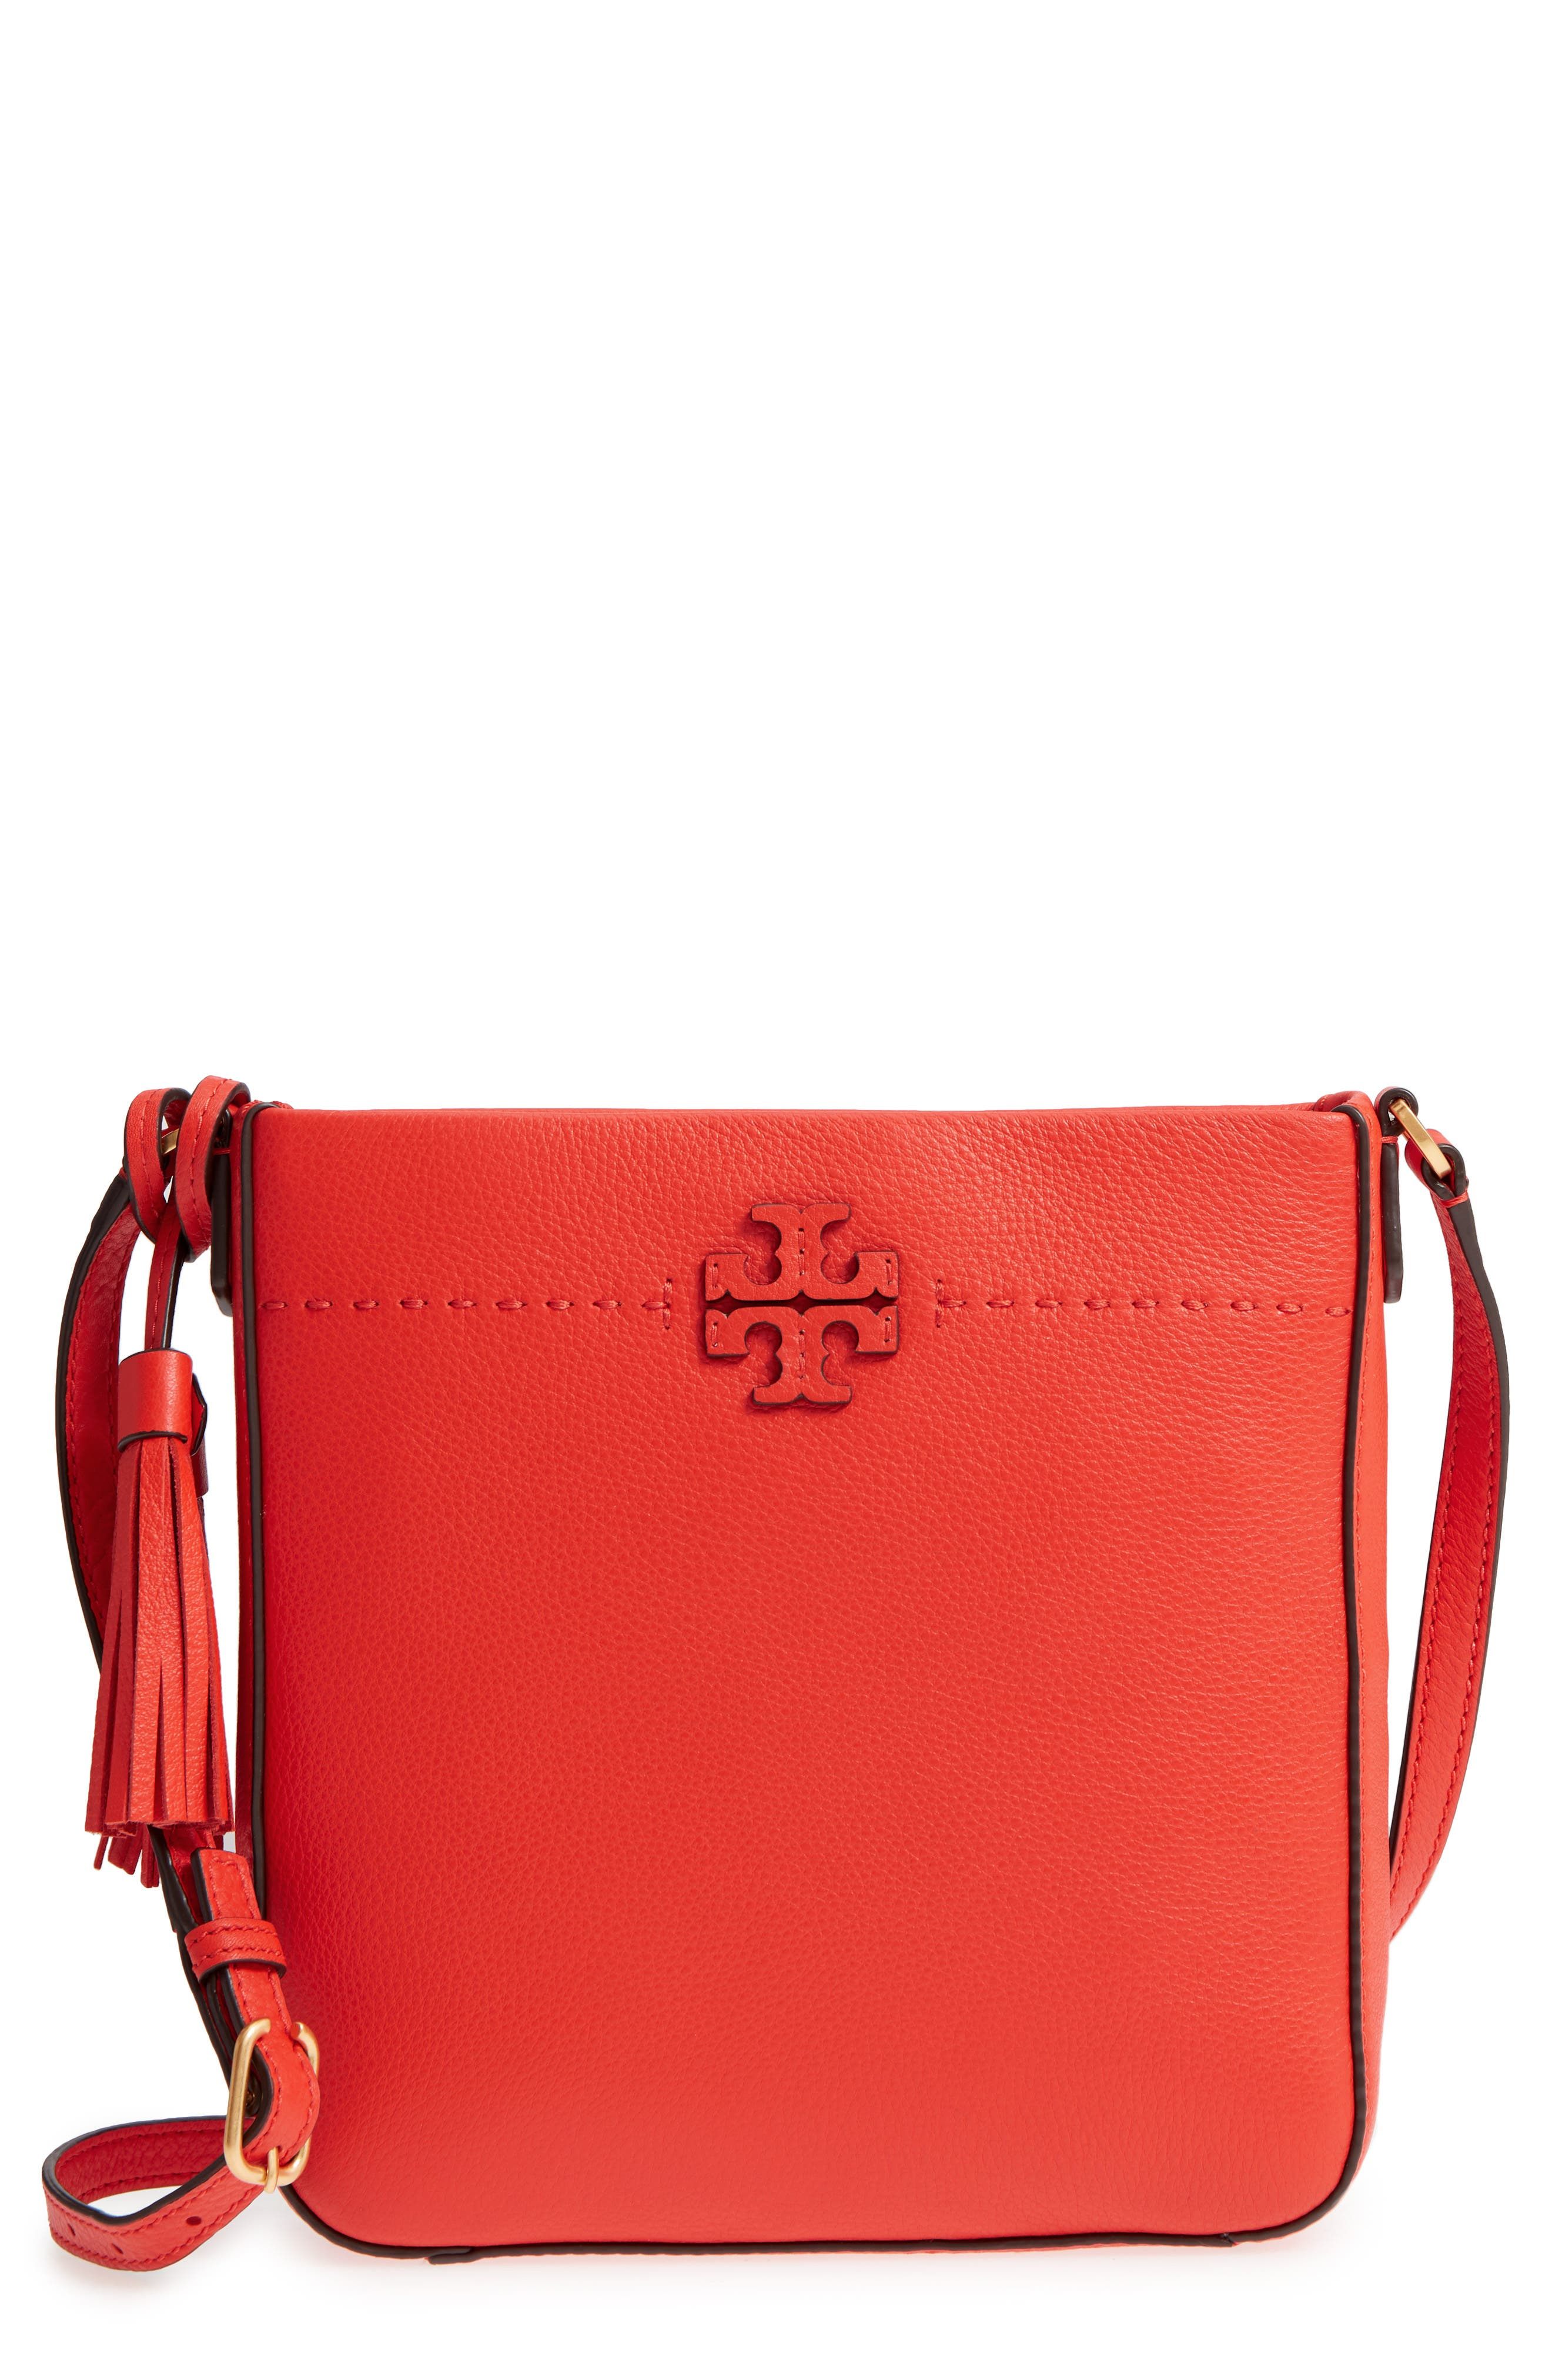 Tory Burch McGraw Leather Crossbody Tote